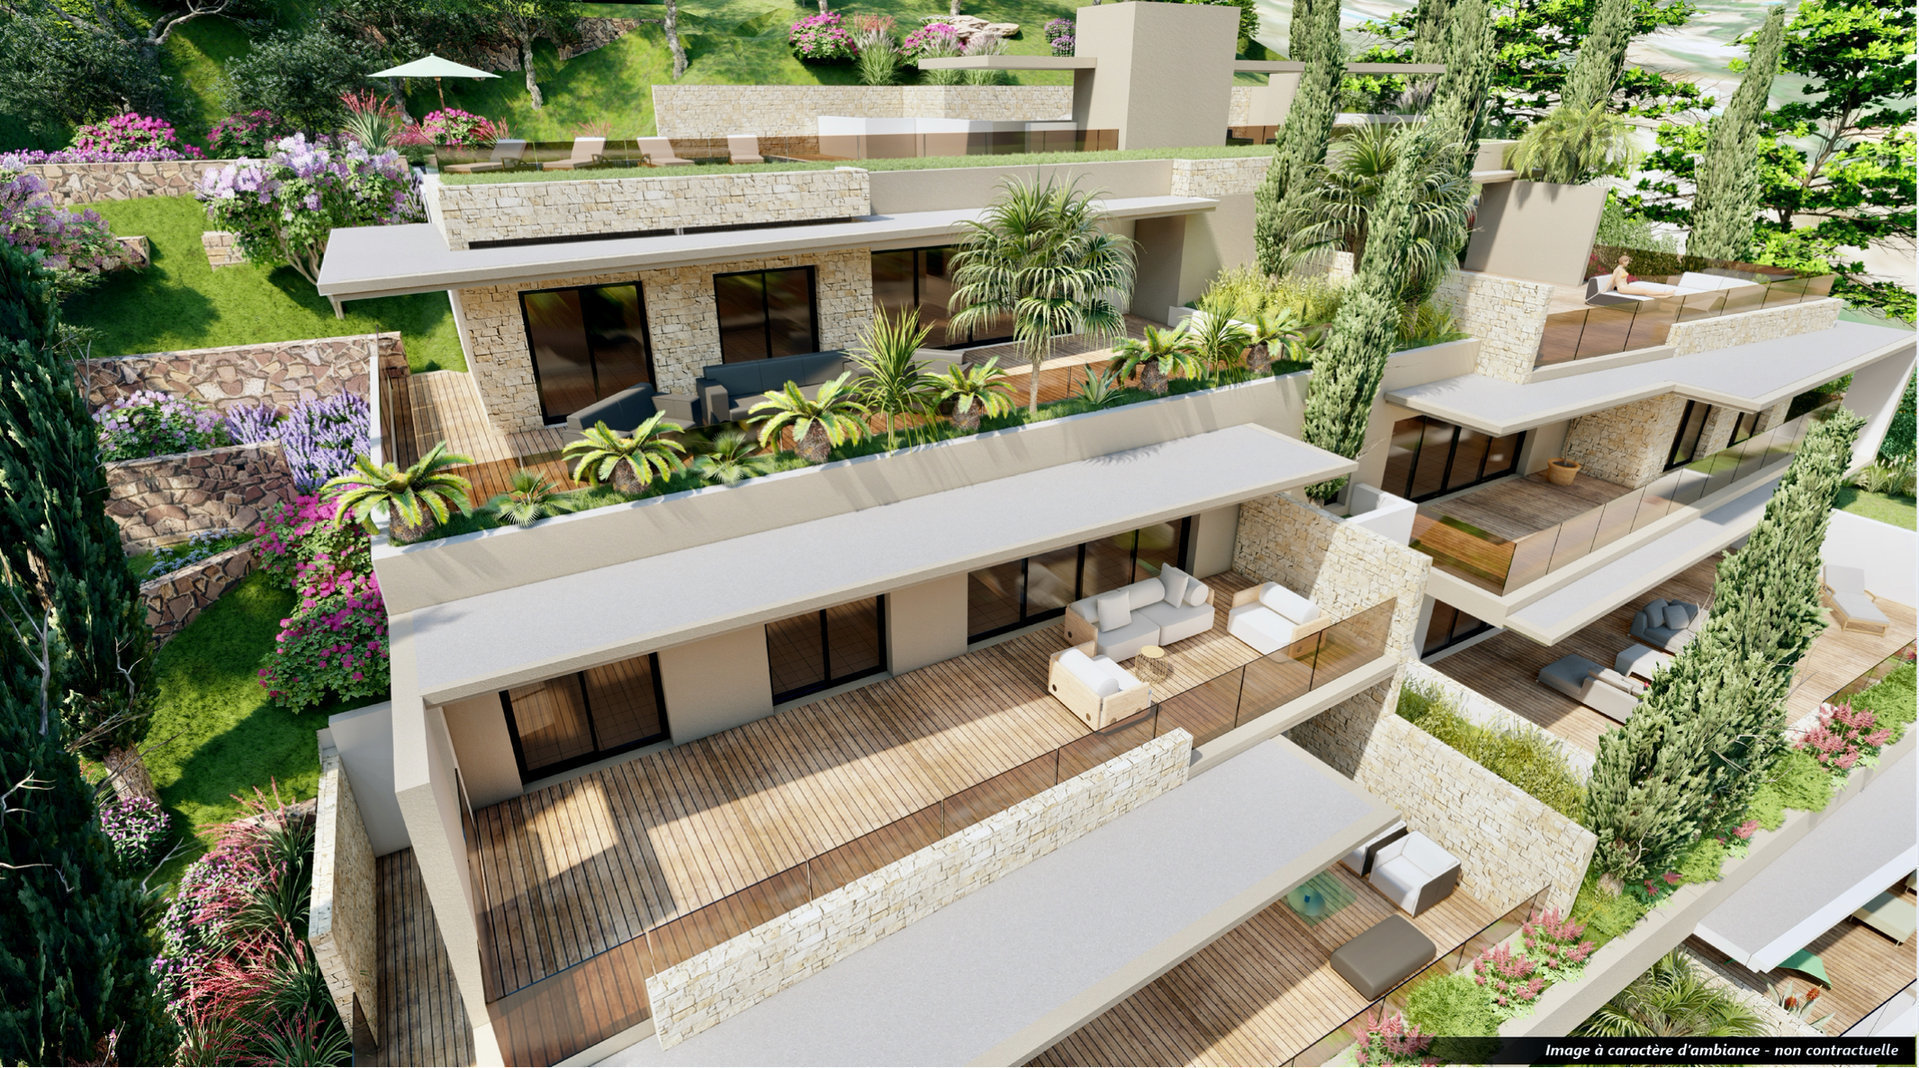 Les Issambres - new construction (93,5 m2 living & 91,5 terrace) high standing apartment with great sea-view